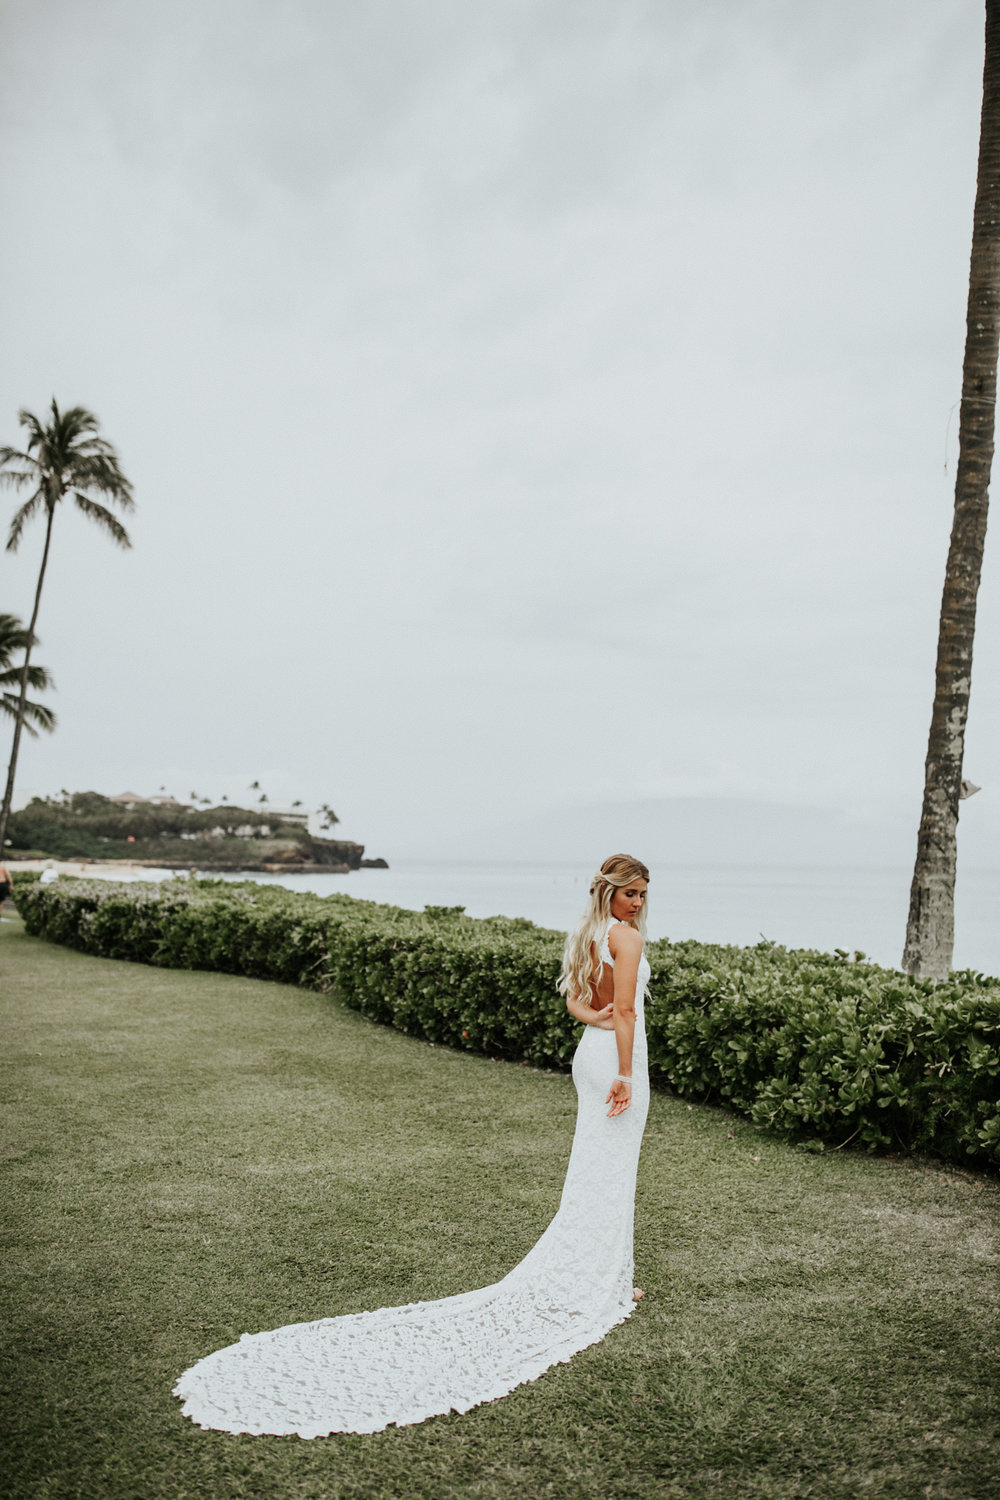 destination-wedding-photographer-hawaii-maui-elopement-38.jpg